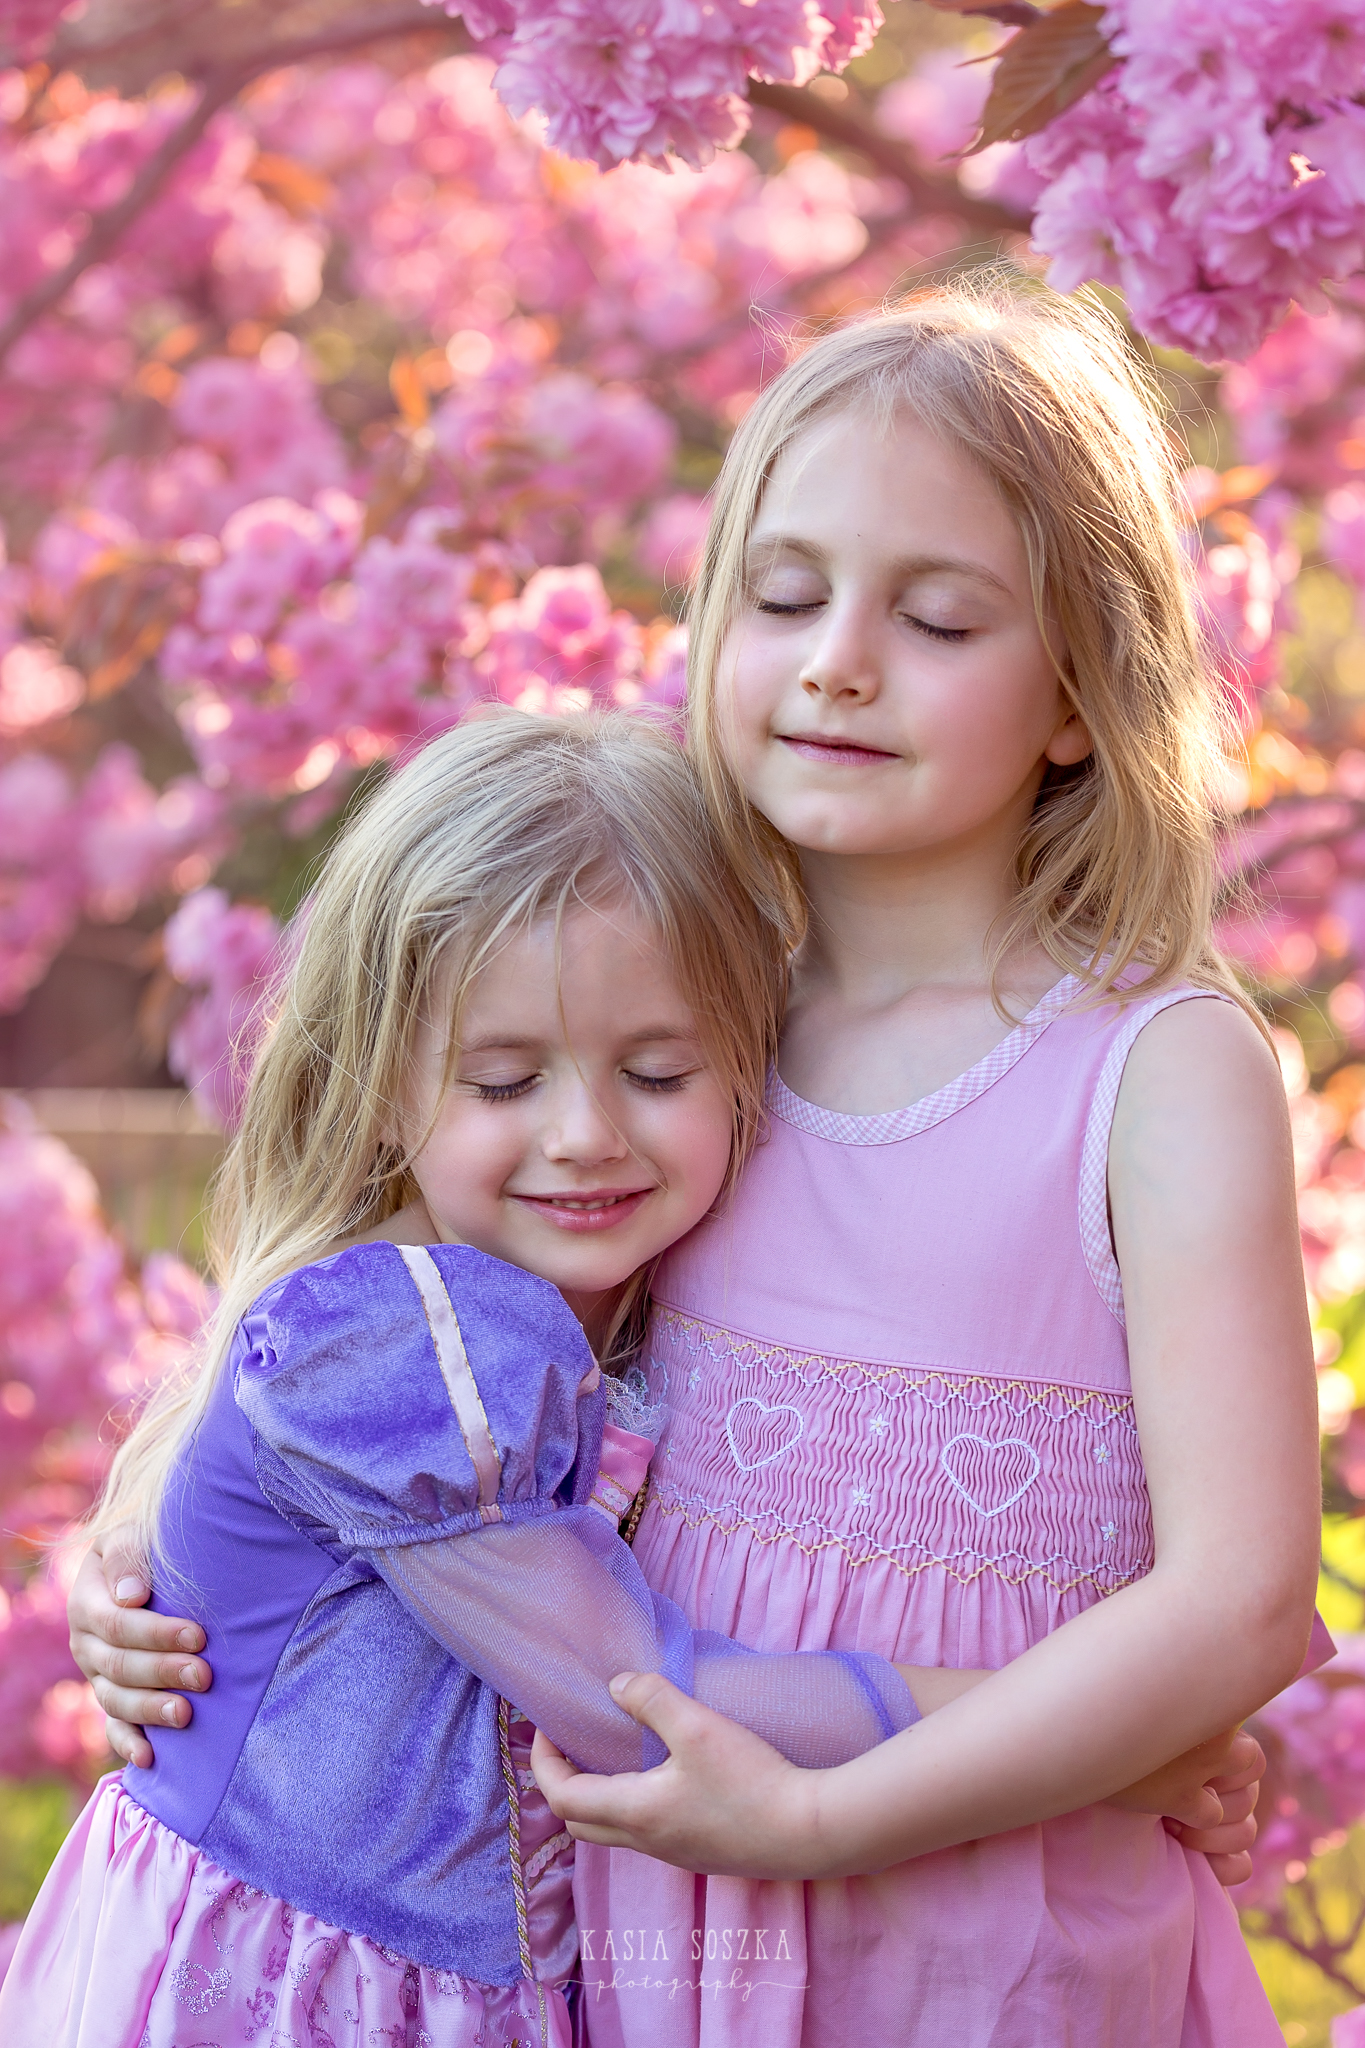 Leeds child photography Bradford children session York children photography: pretty blond sisters hugging each under under a blooming cherry tree